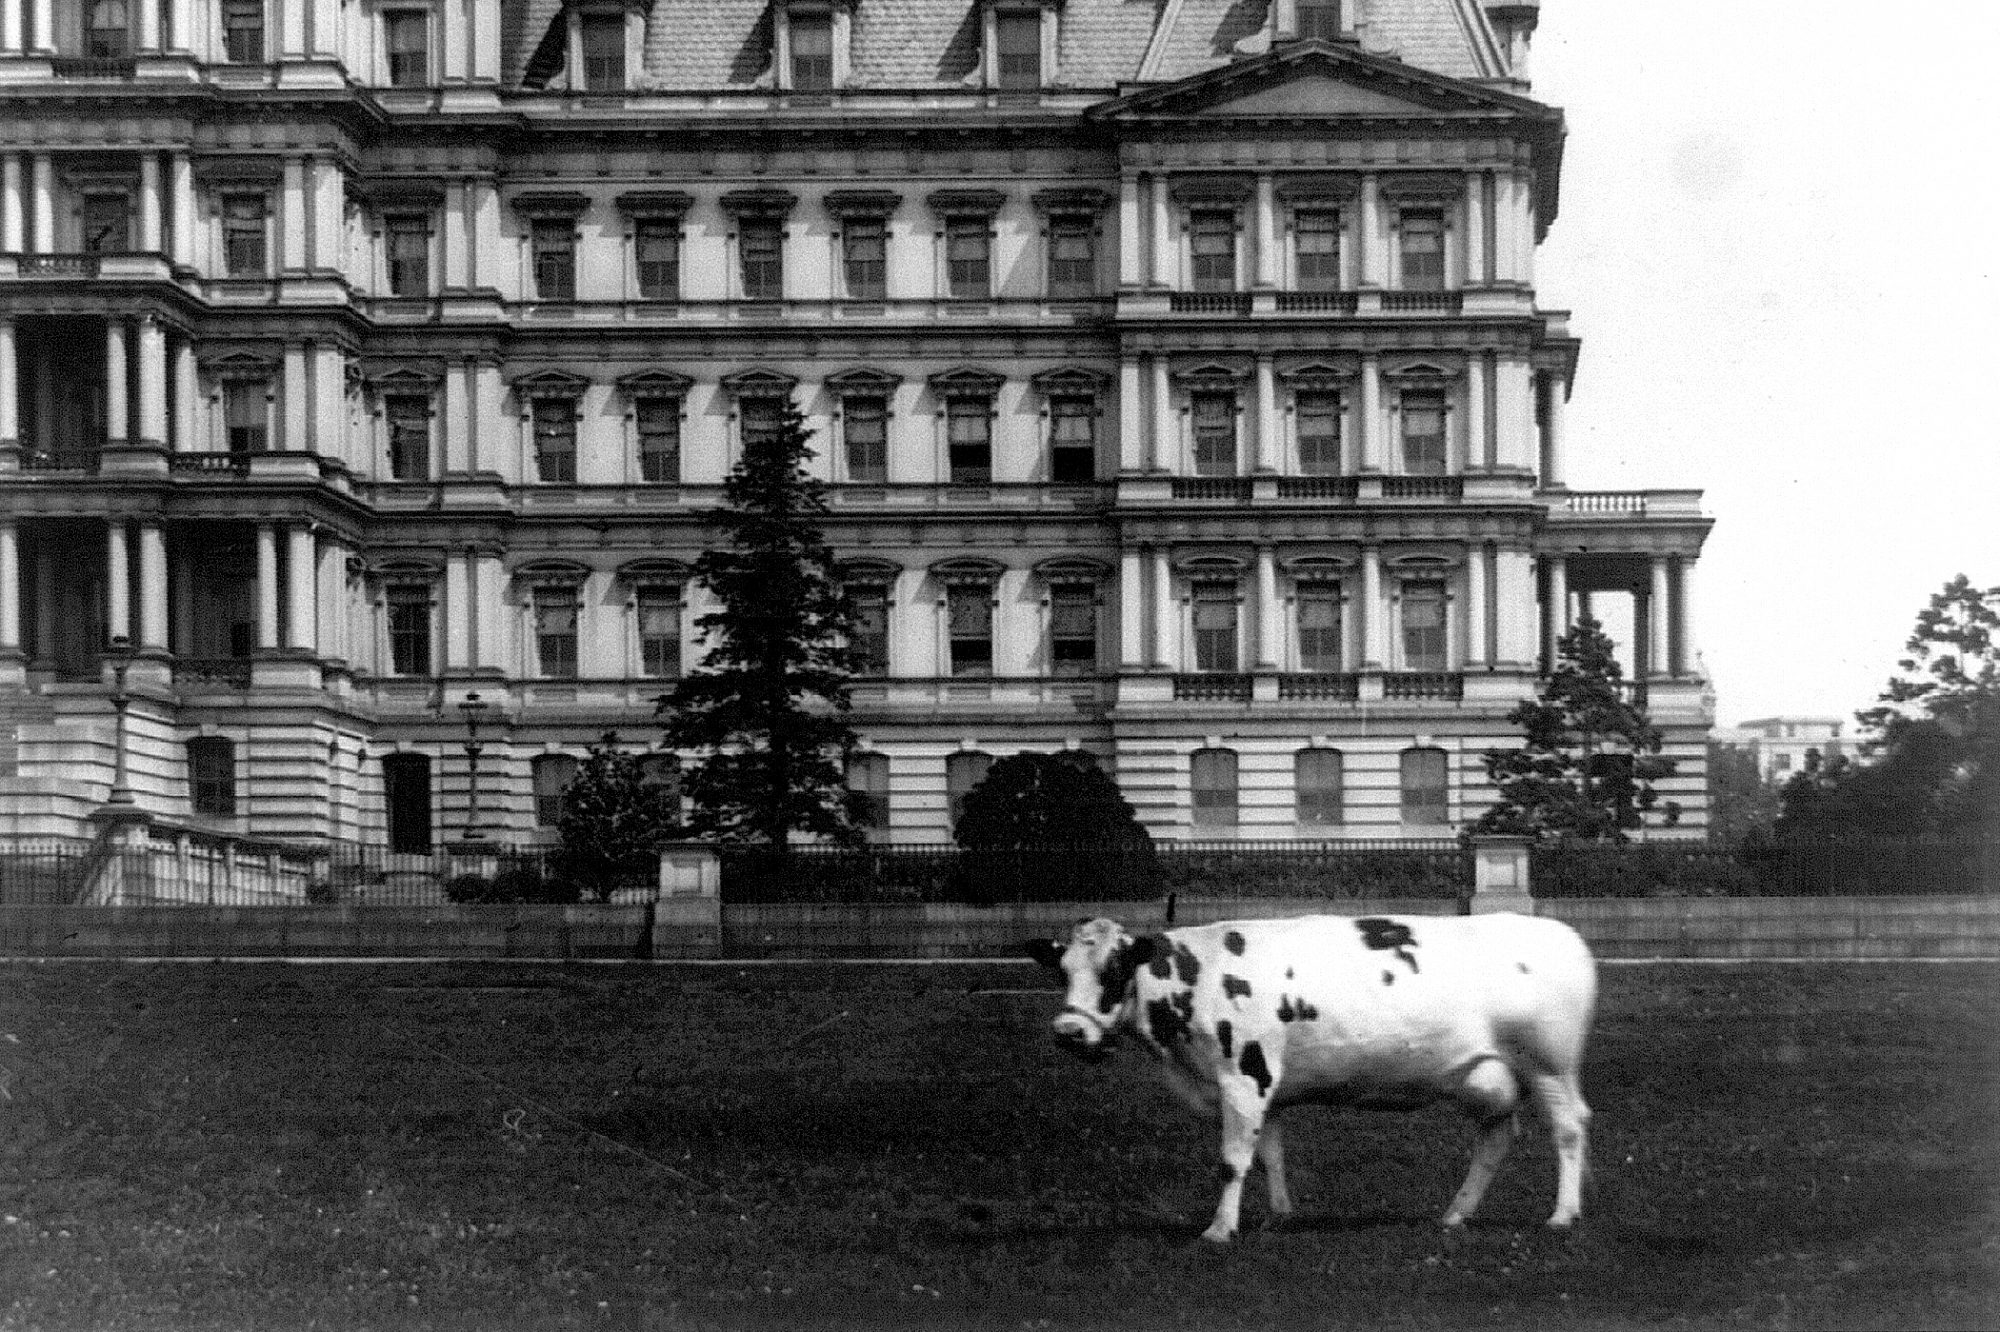 Photograph of cow on a lawn